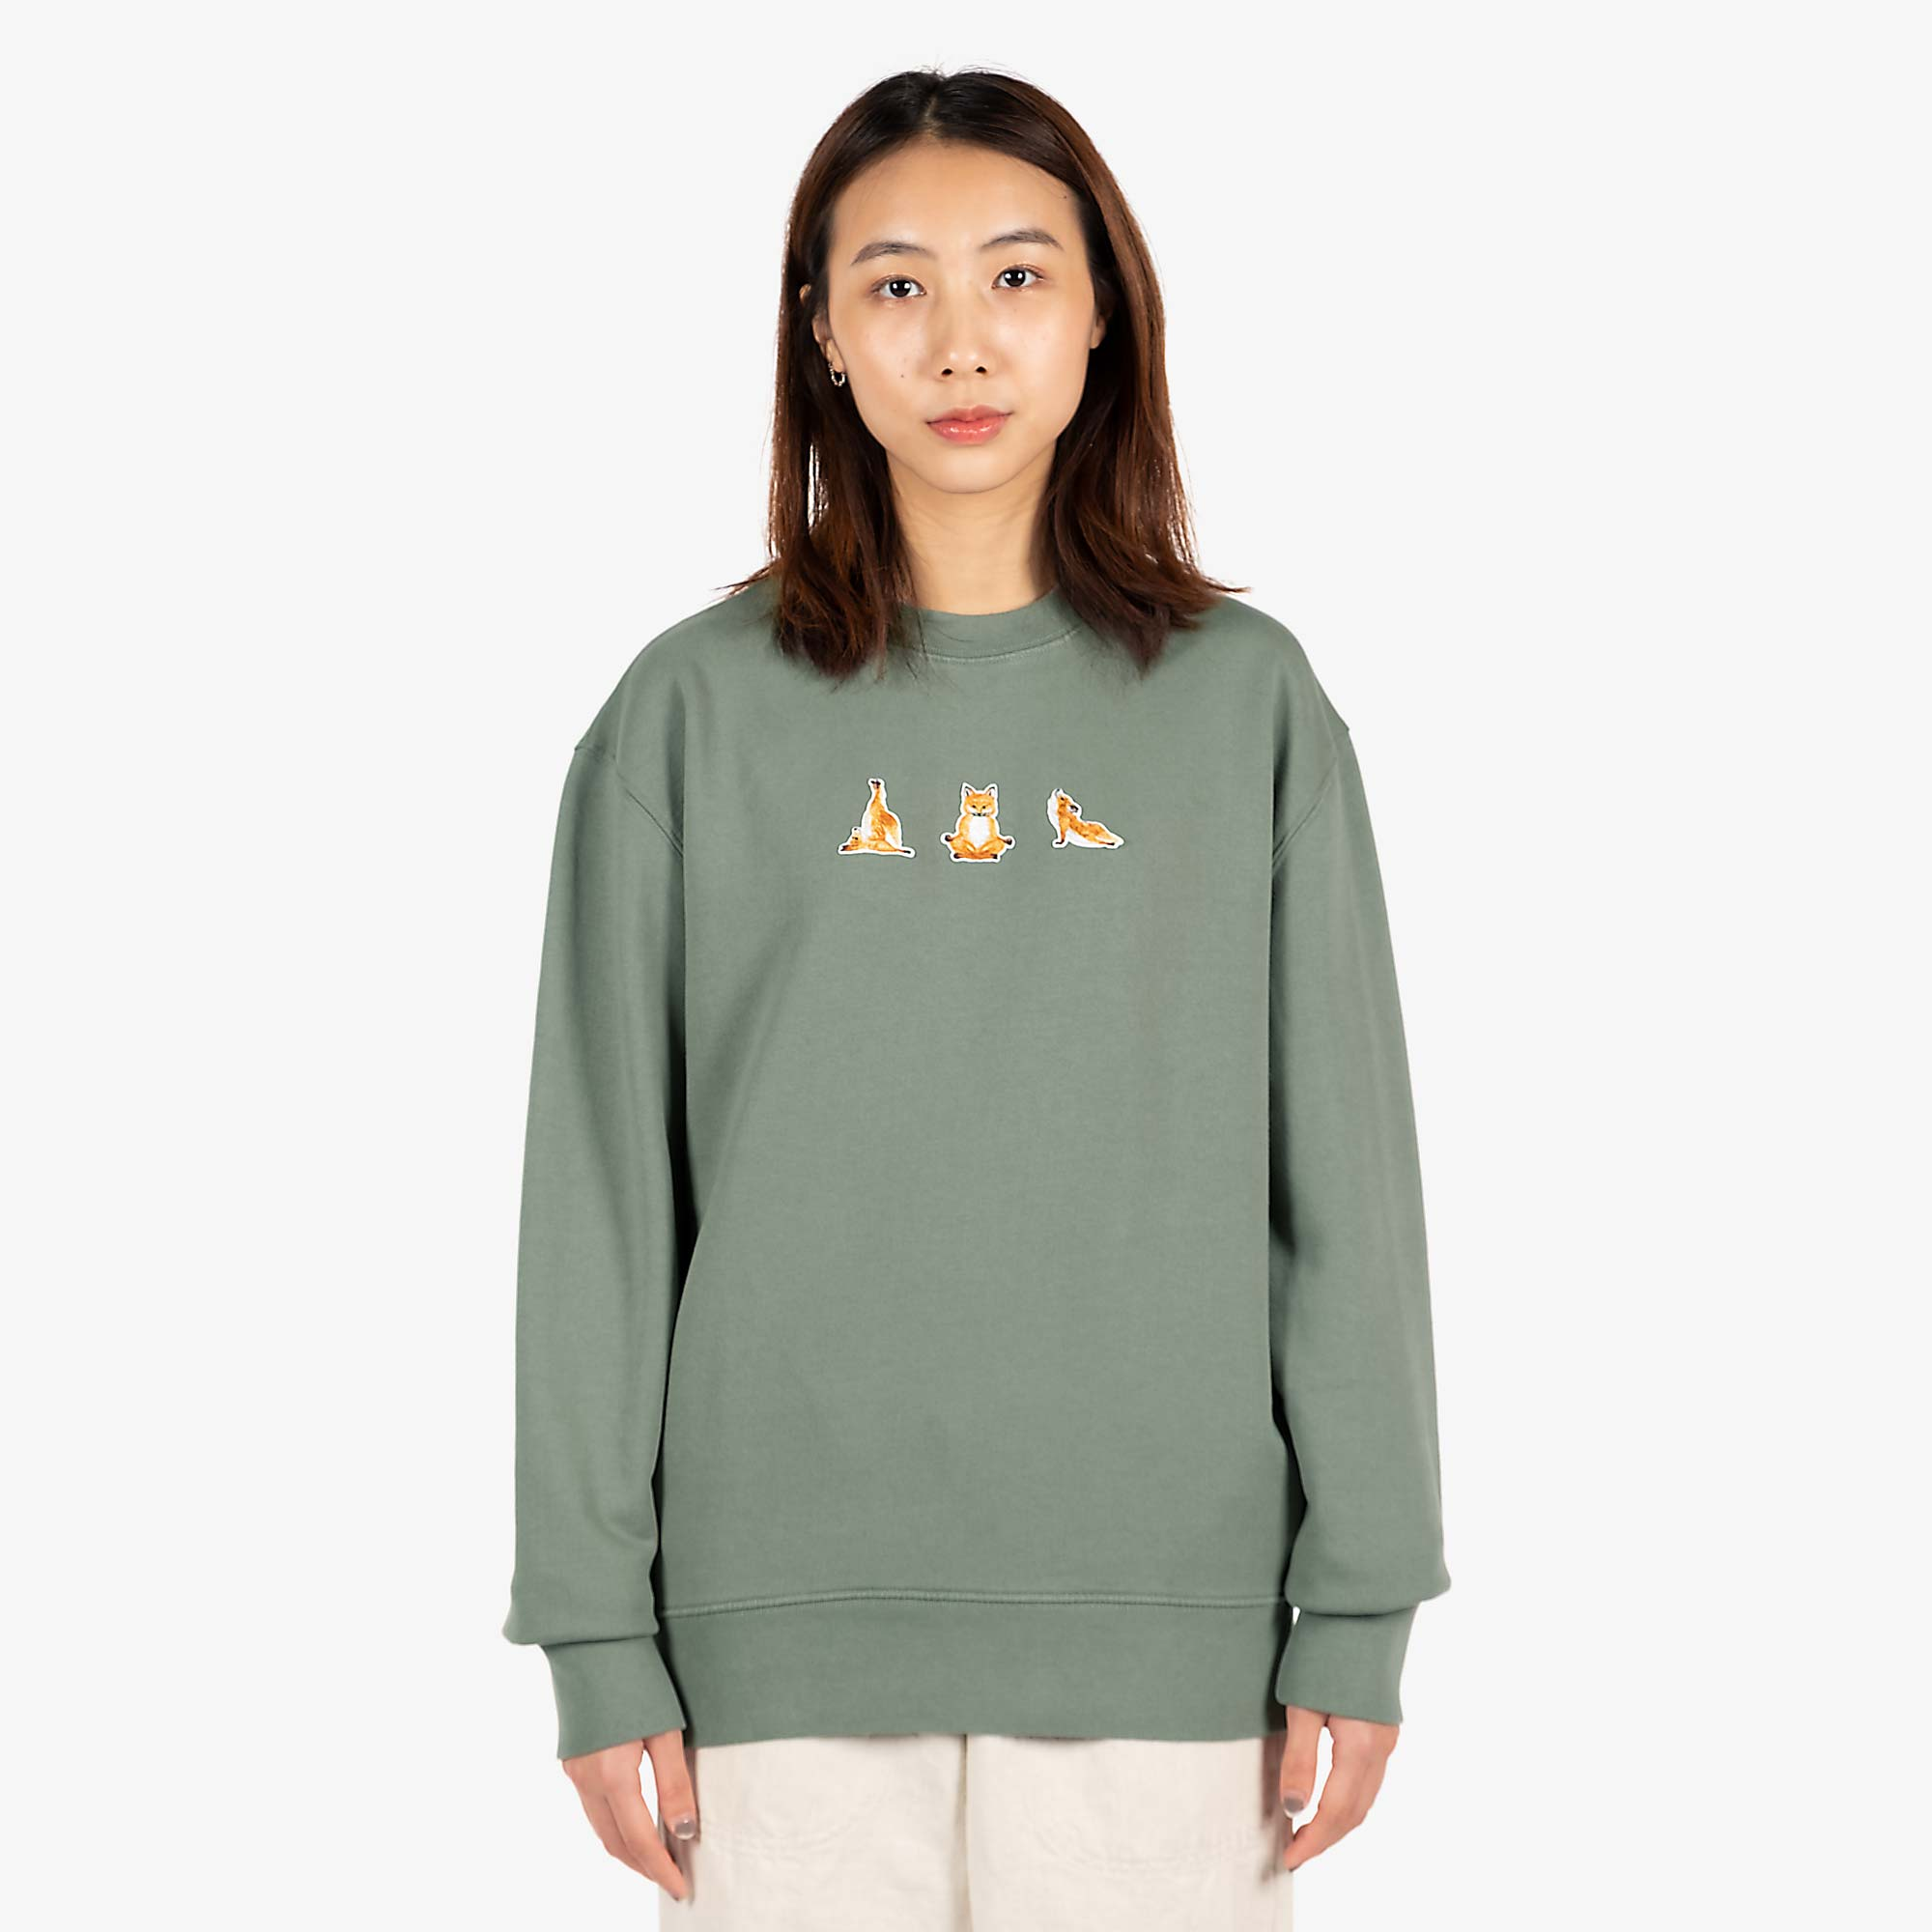 Maison Kitsune Womens Yoga Fox Patches Sweat - Blue / Green 1